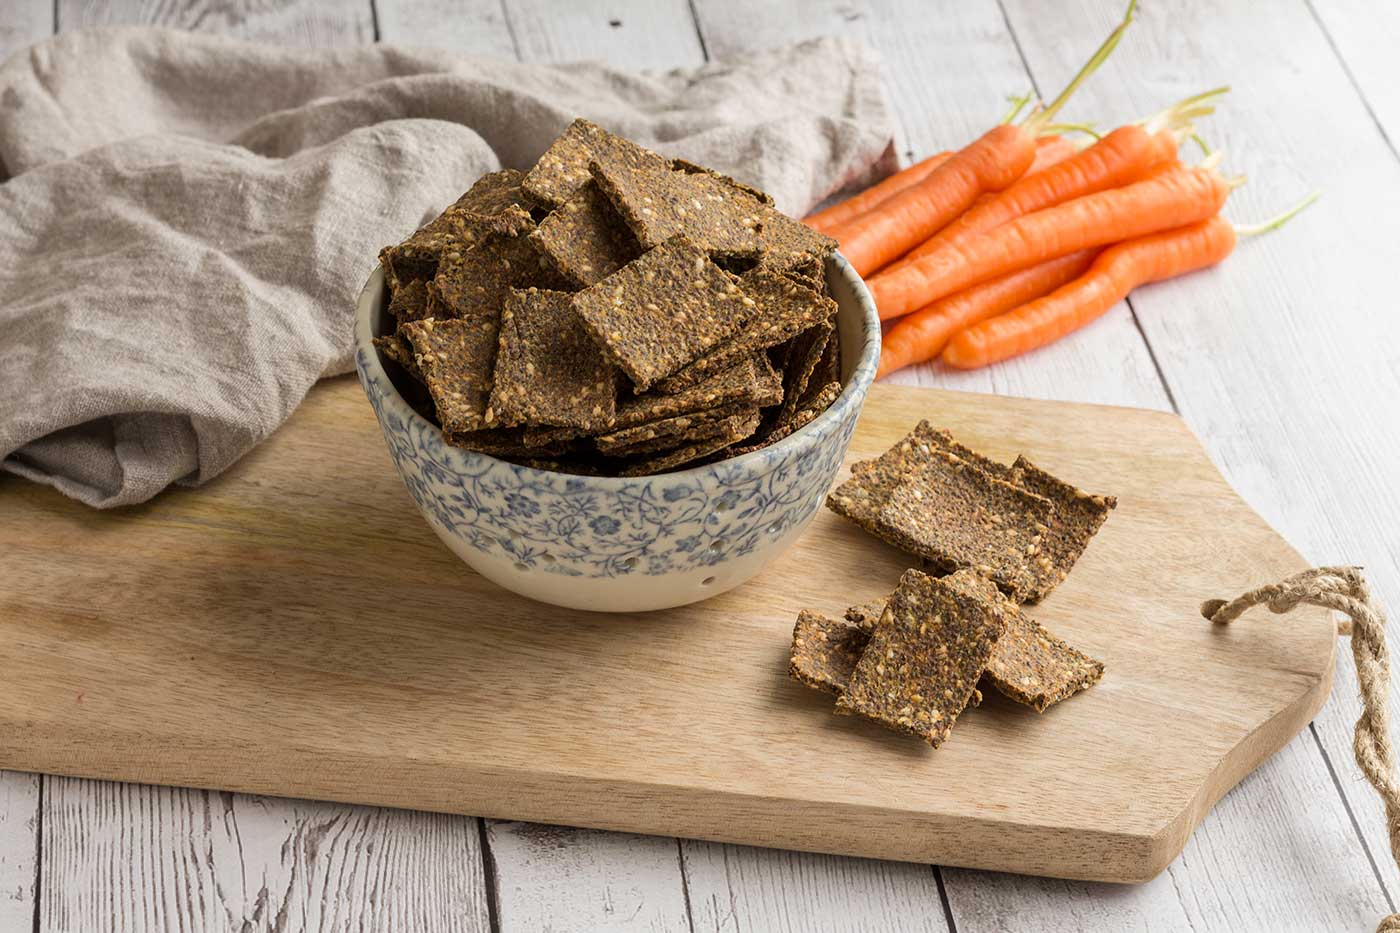 Carrot-and-Seed-Crackers-Thermomix-Recipe